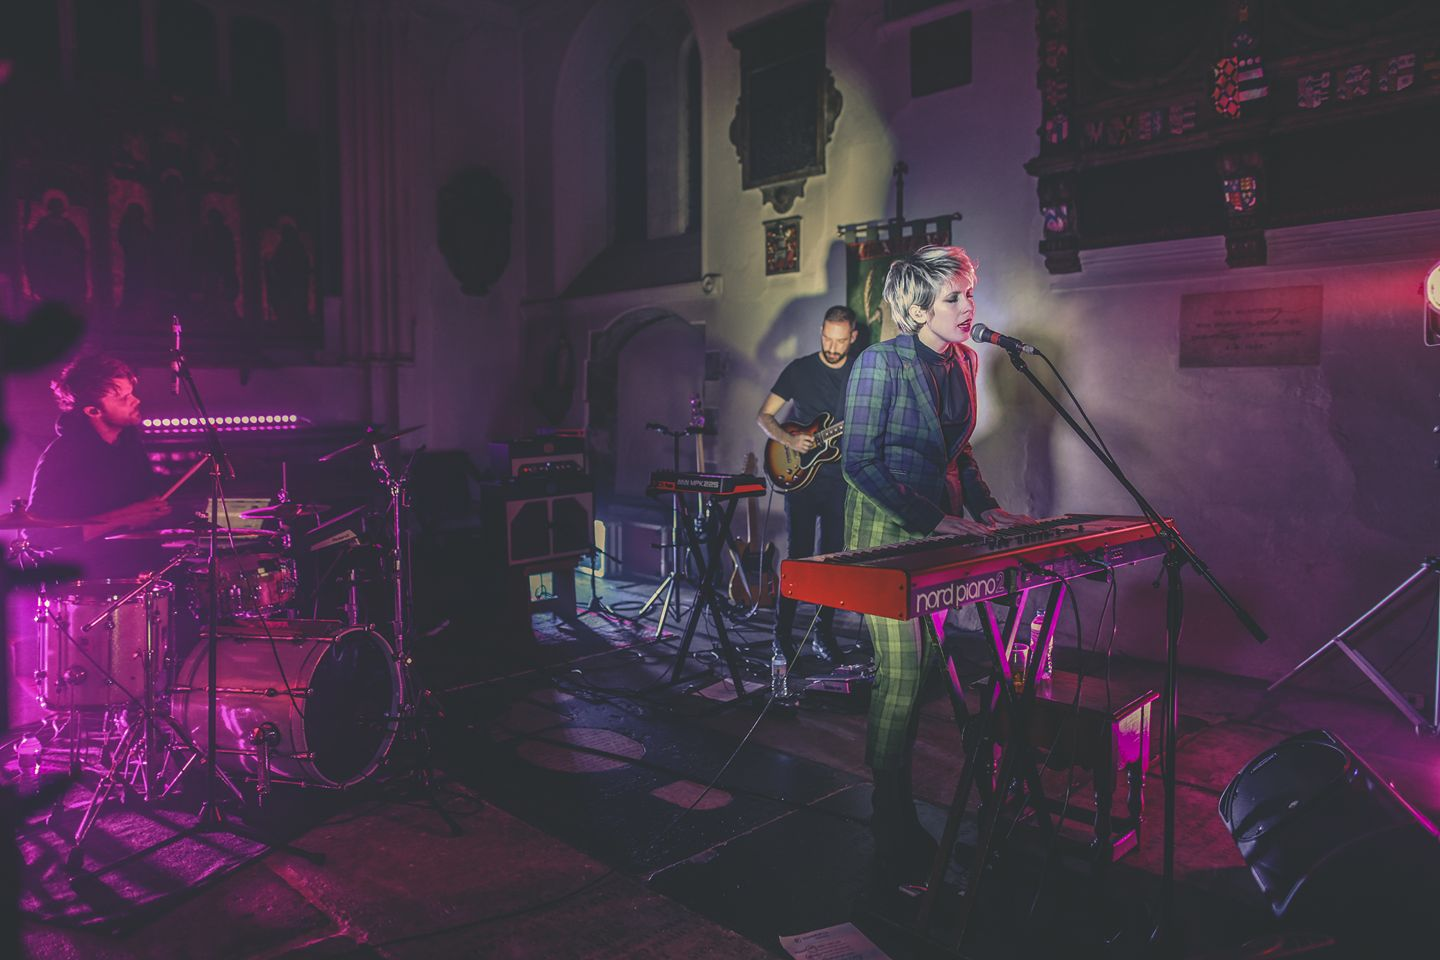 With Jazz Morley, headlining at St Pancras Old Church in October